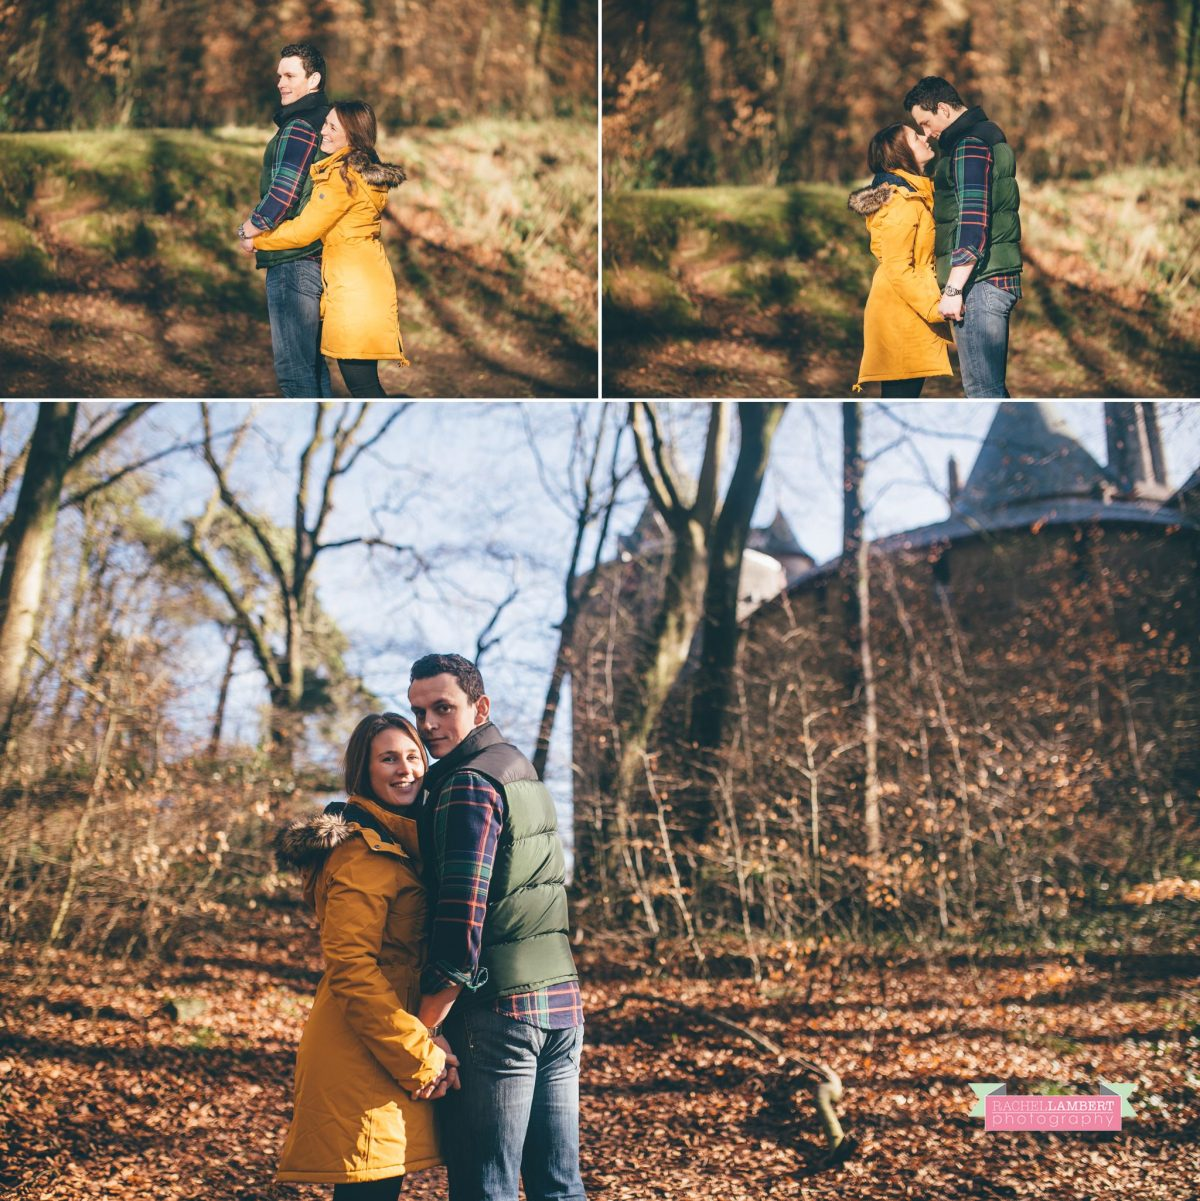 cardiff_welsh_wedding_photographer_rachel_lambert_photography_claire_chris_engagement_castell_coch_ 27